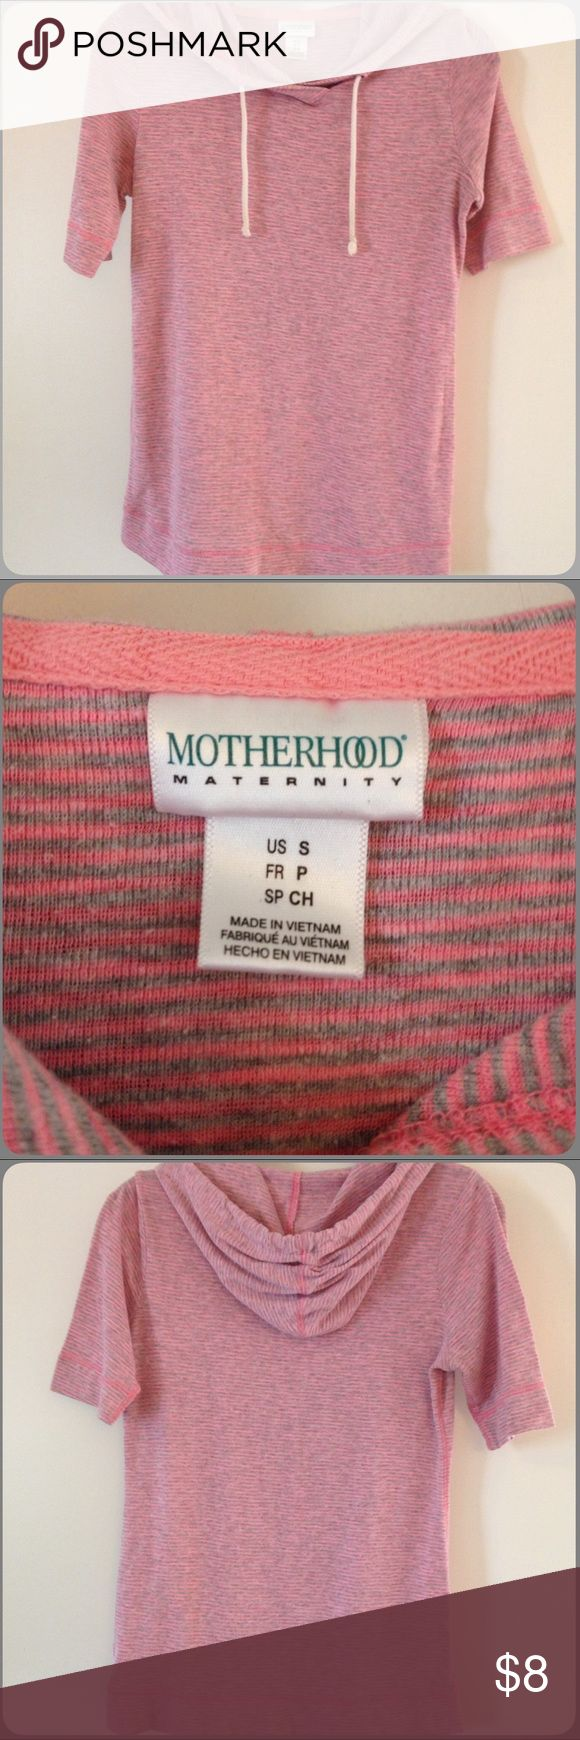 MOTHERHOOD Maternity Hoodie🐣 Cute & Cozy MOTHERHOOD Maternity Lightweight Short Sleeve Hoodie. Pink & gray stripes. Excellent condition. Worn 2 times. Size S (could also be worn by a woman who is not pregnant) Motherhood Maternity Tops Sweatshirts & Hoodies